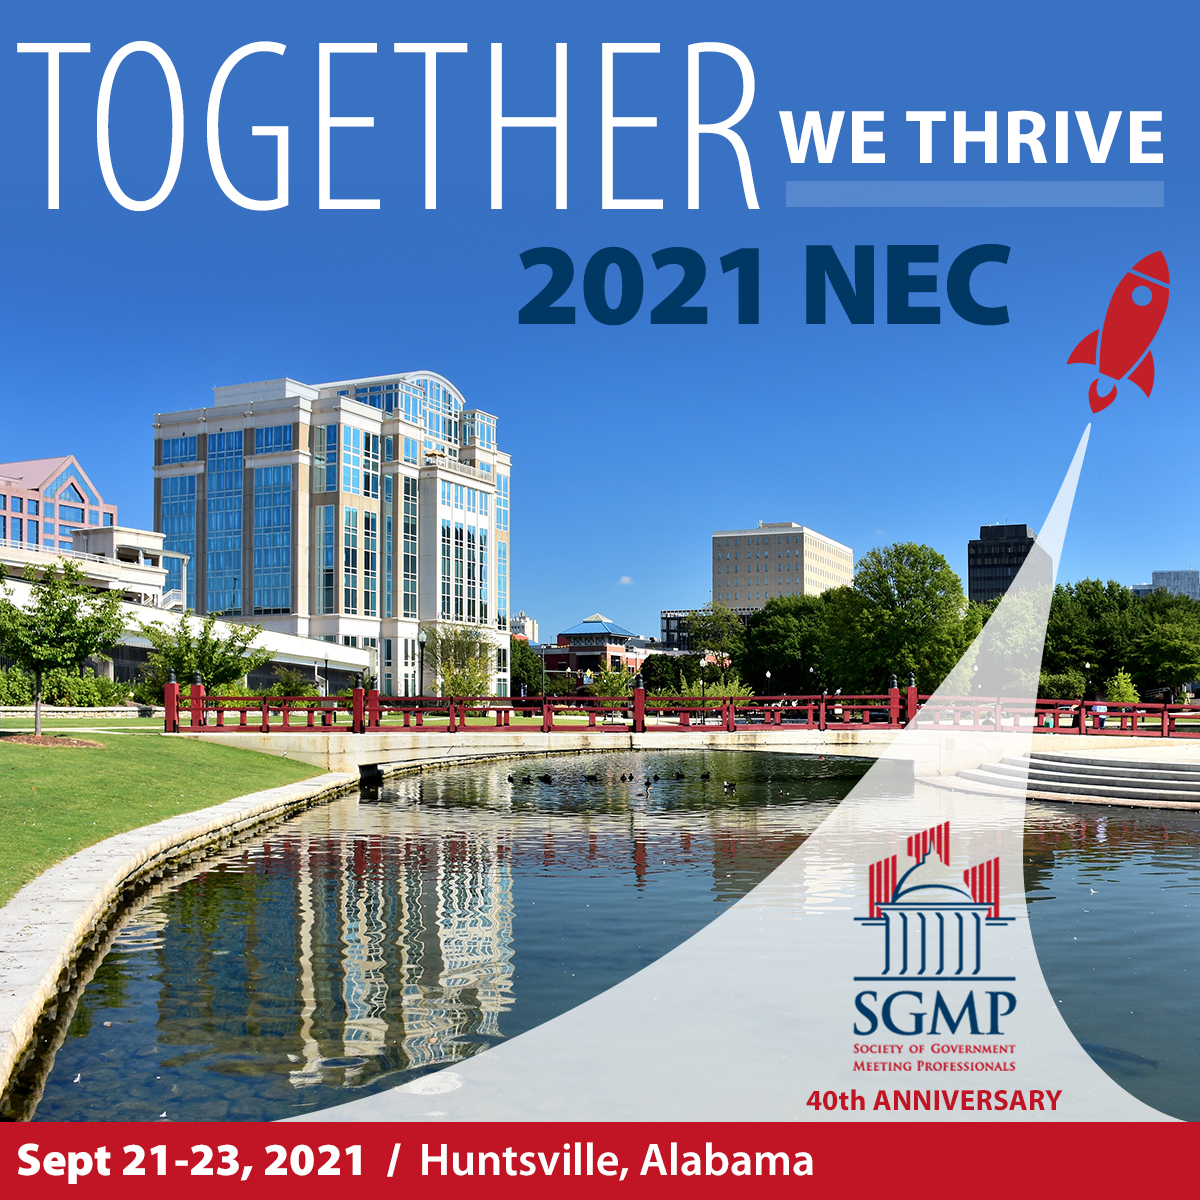 Together We Thrive at 2021 NEC